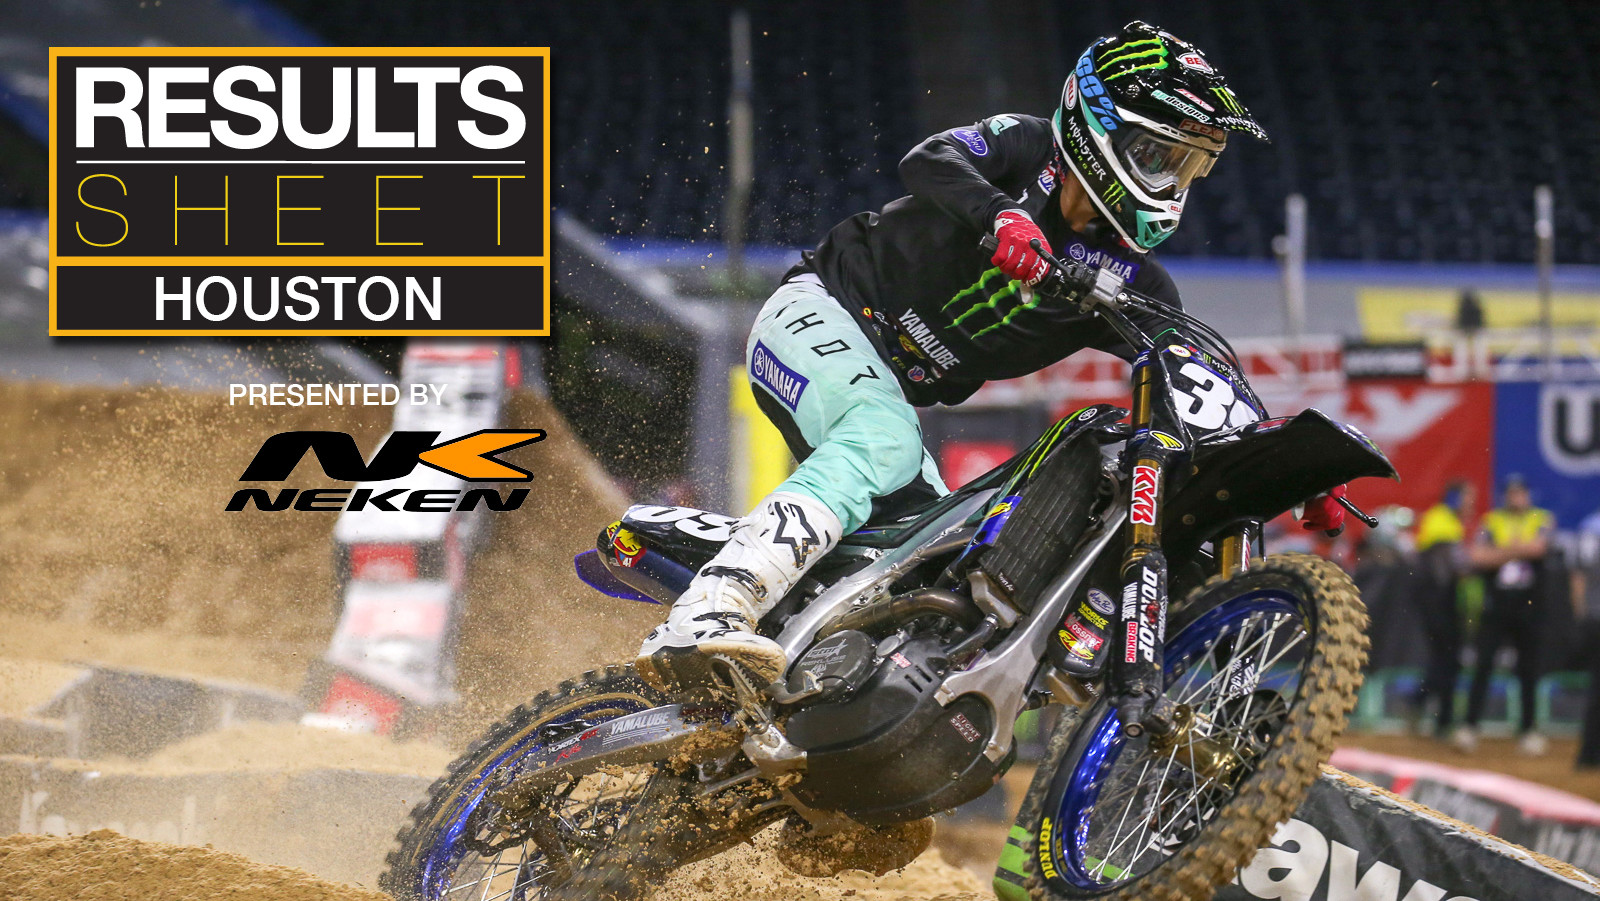 Results Sheet: 2019 Houston Supercross